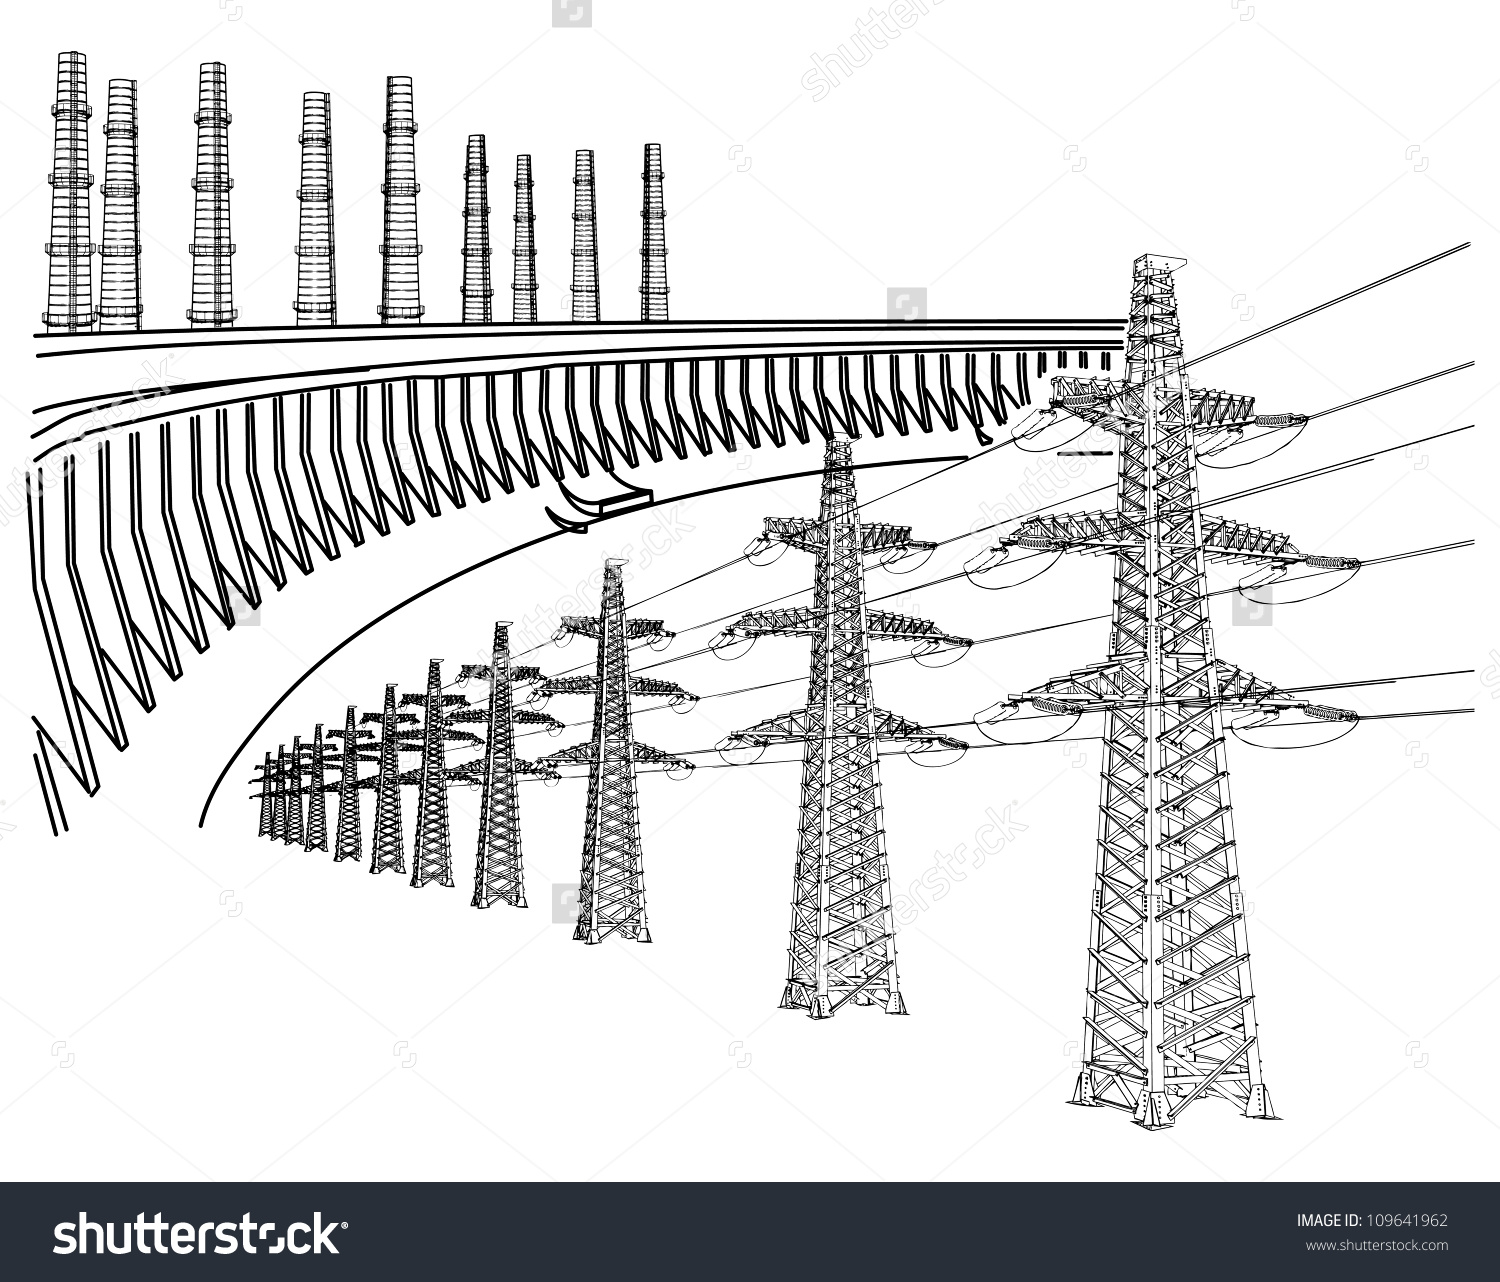 Power Transmission Line Dnieper Hydro Power Stock Vector 109641962.